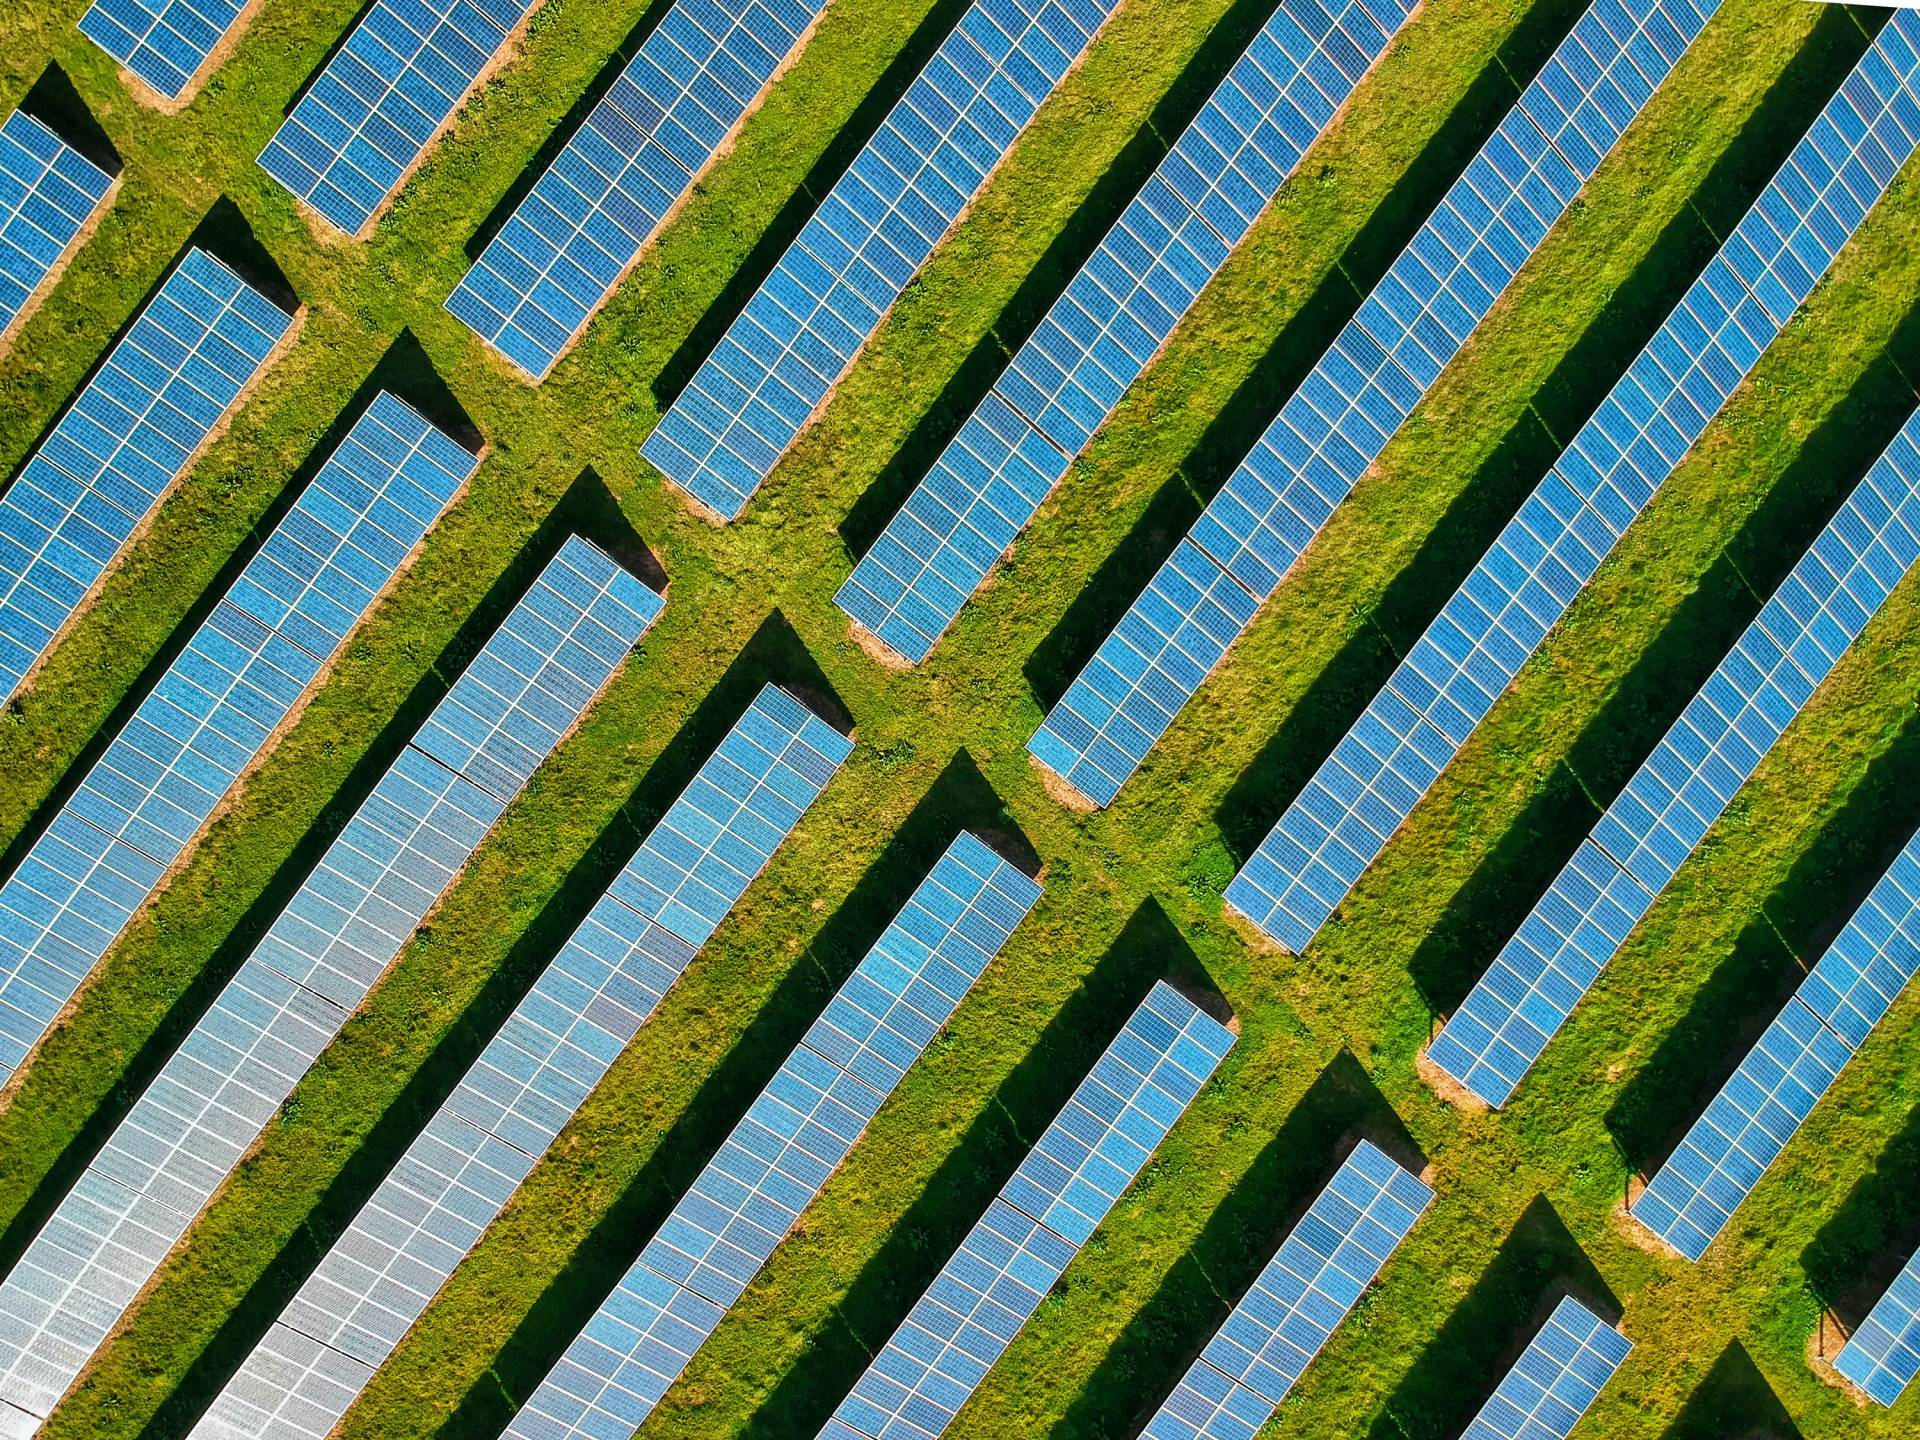 Aerial of solar panels in a field